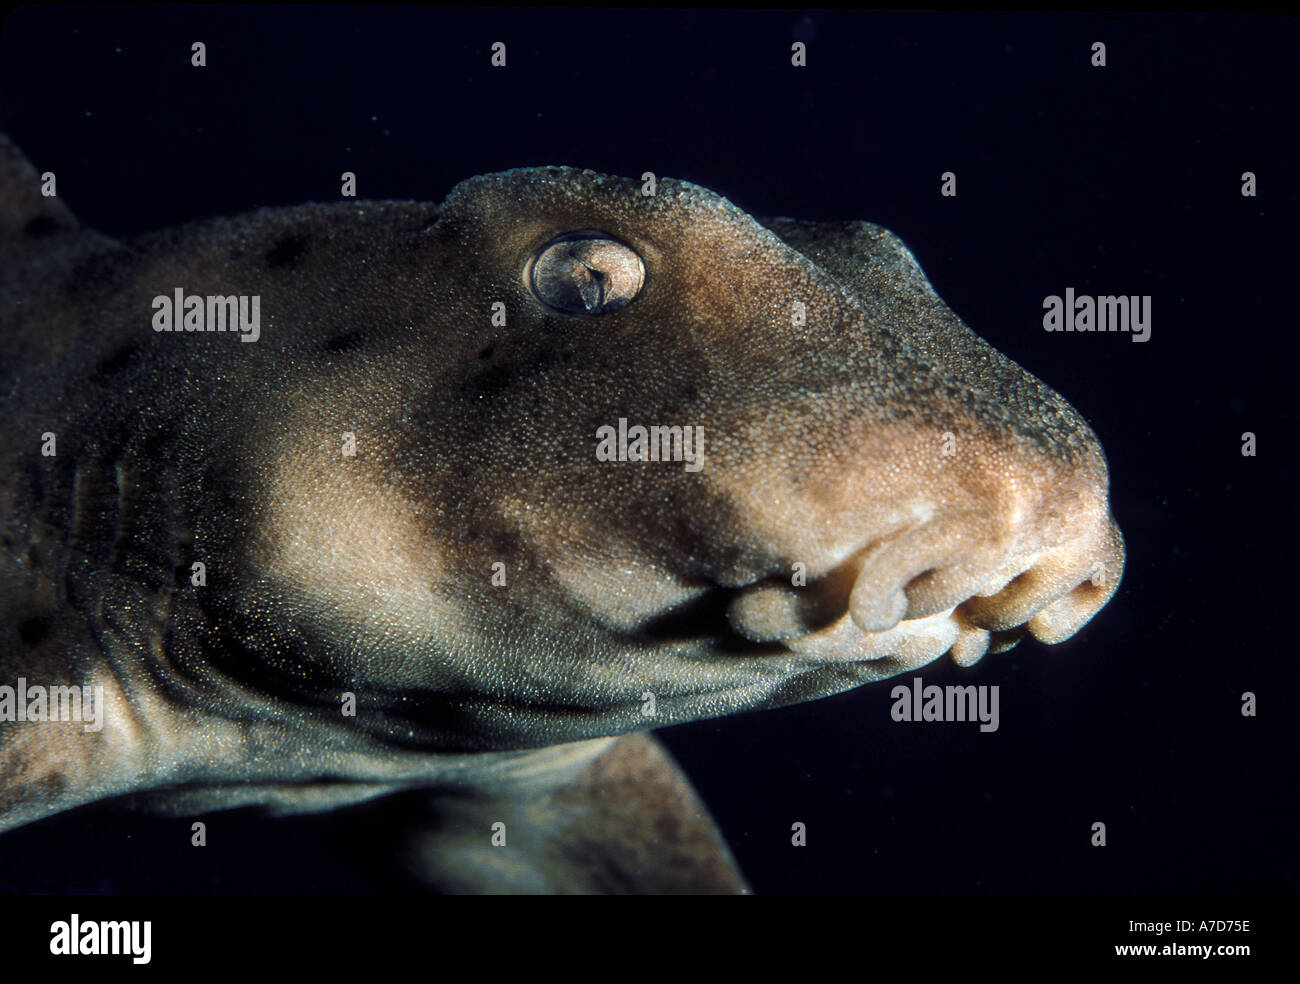 FACE OF A HORN SHARK HETERODONTUS FRANCISCI SOUTHERN CALIFORNIA - Stock Image